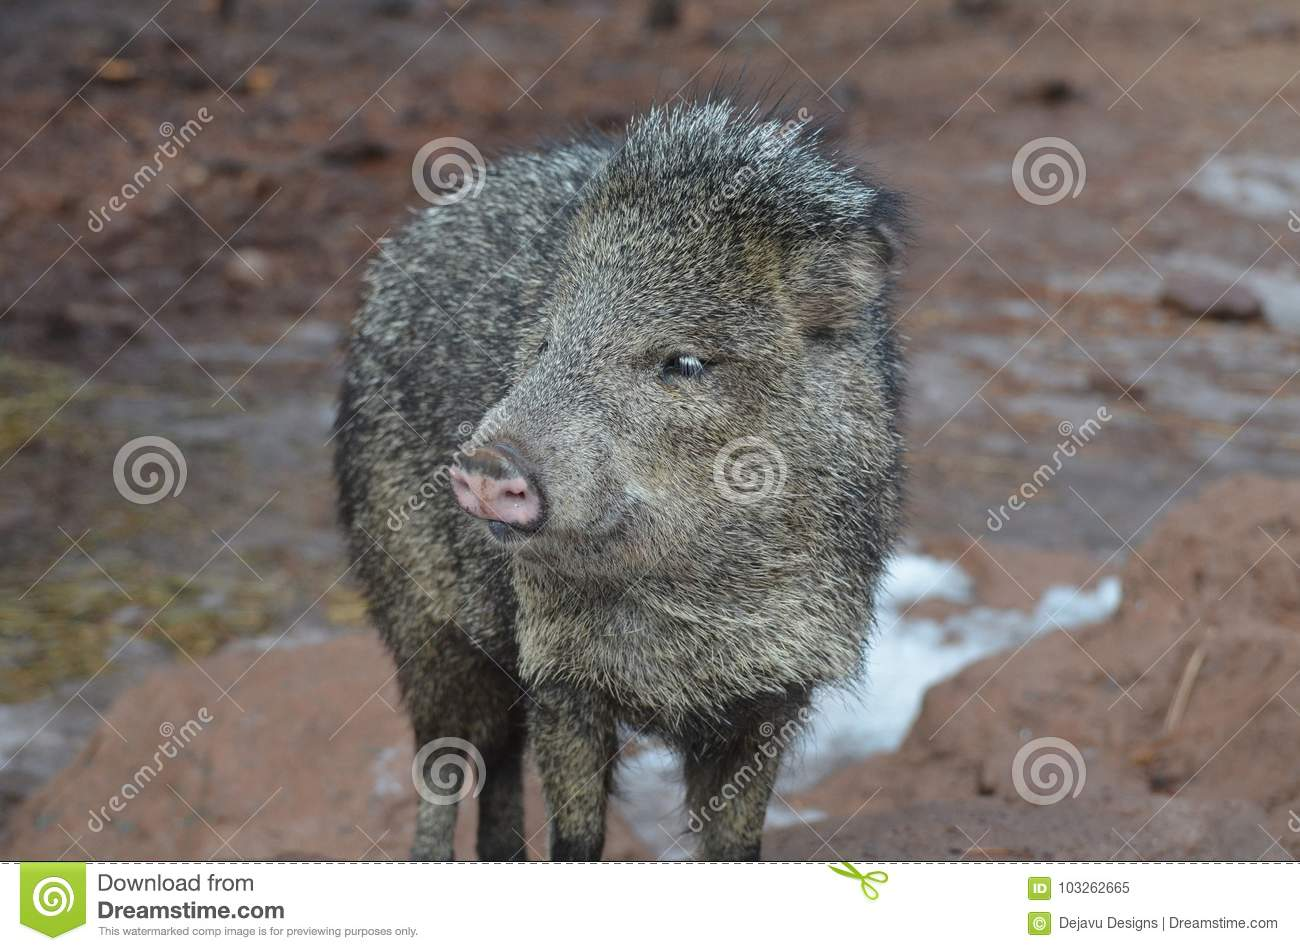 Cute black and brown peccary skunk pig in the wild